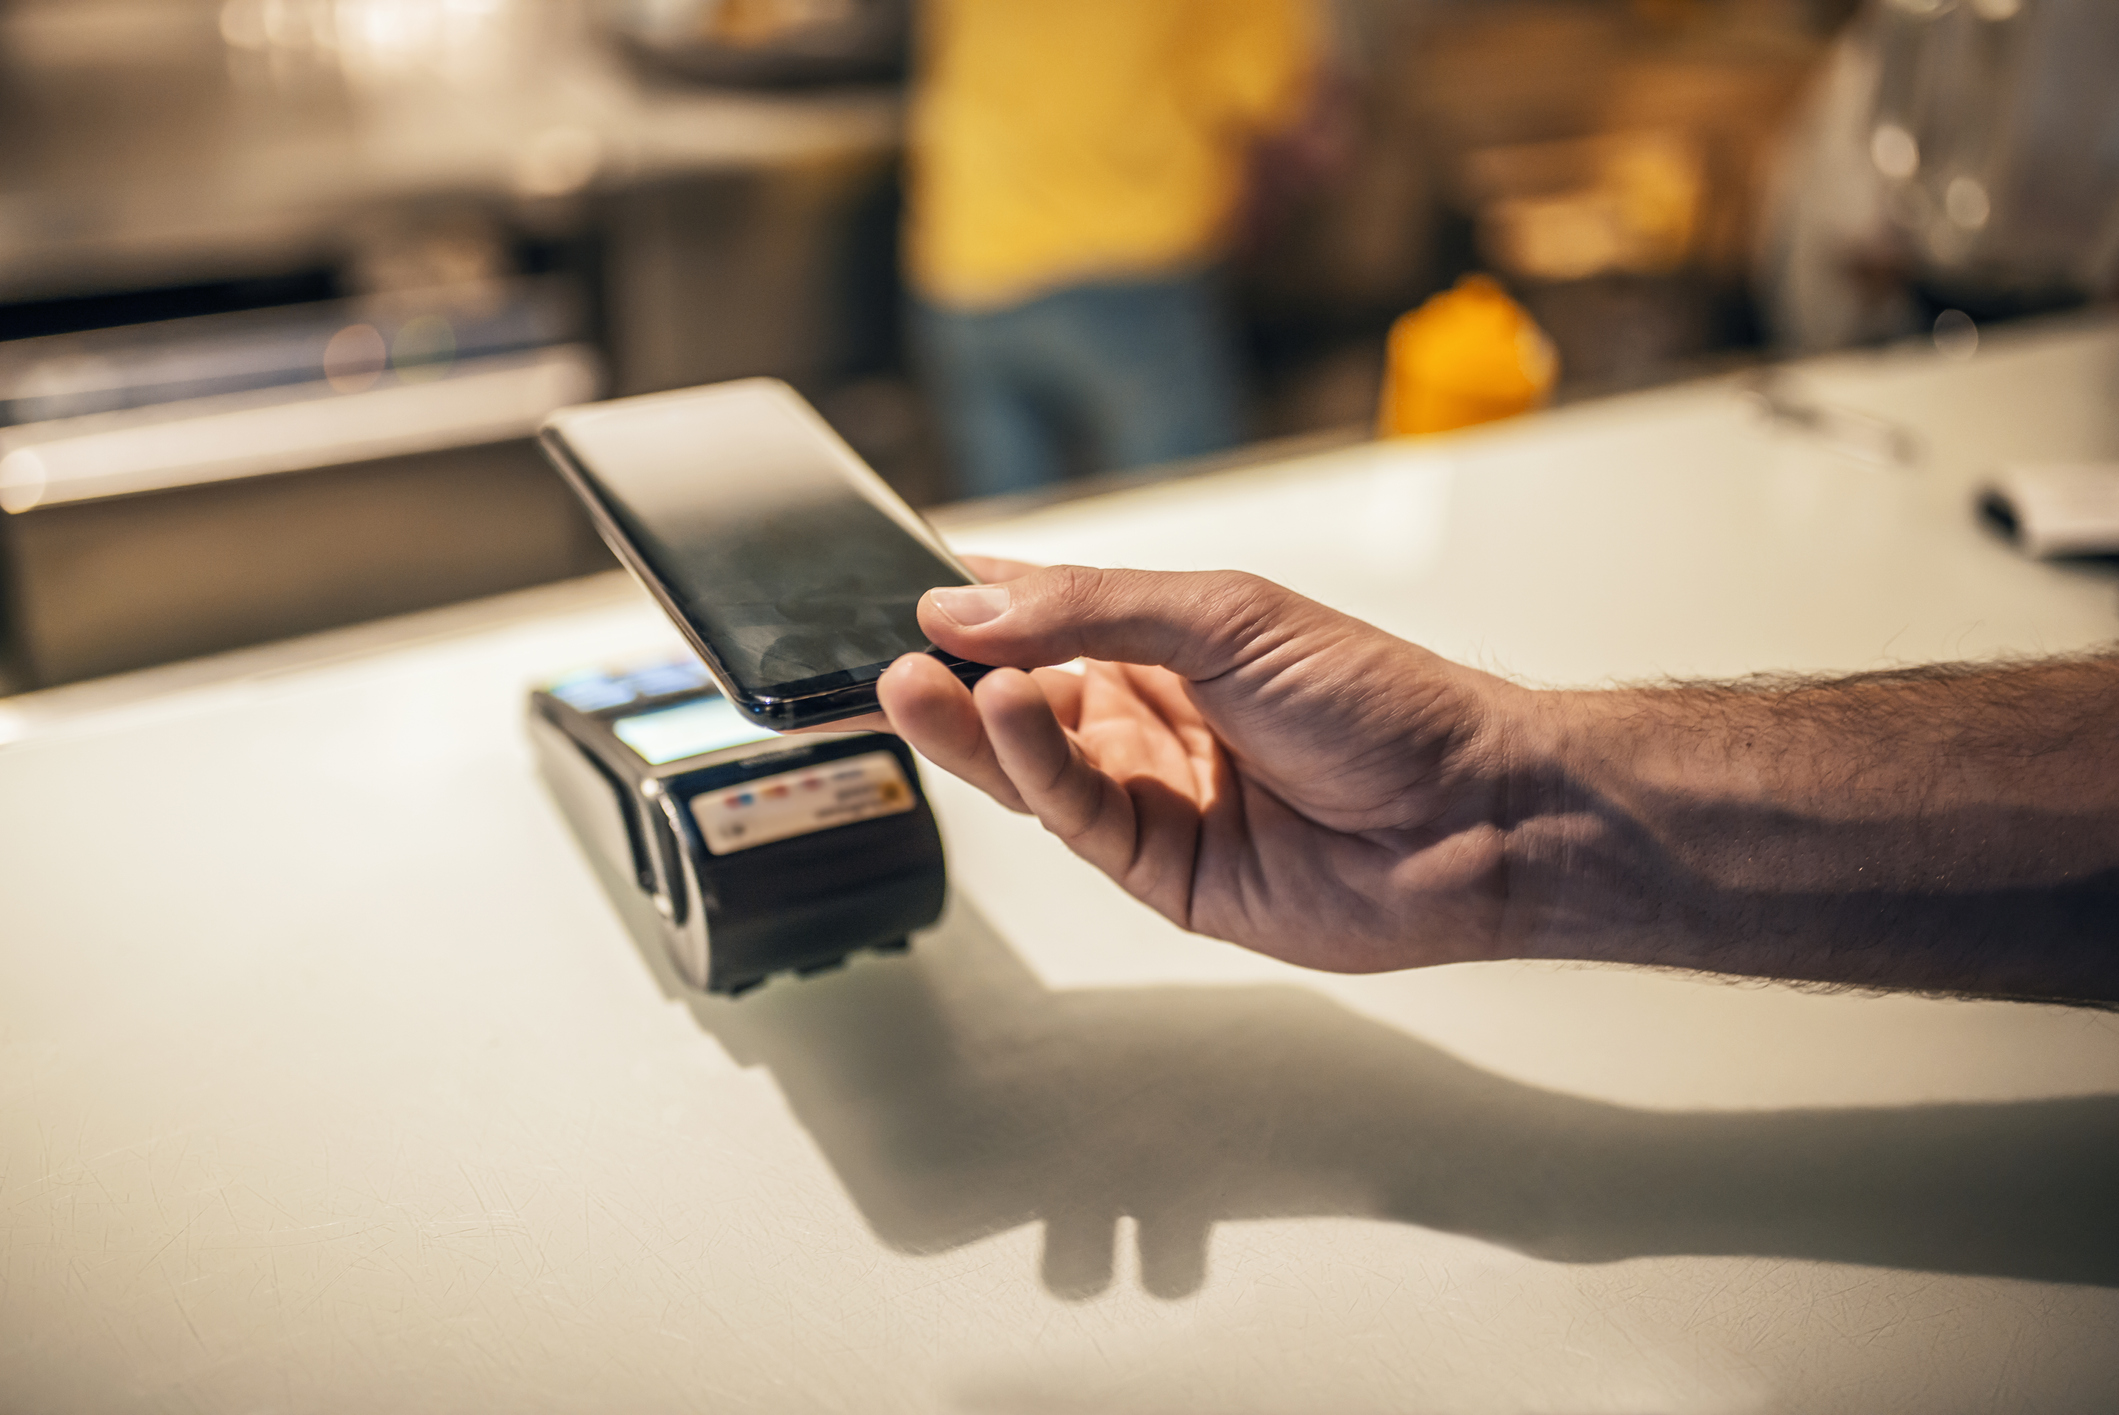 Human hand with smartphone paying for order in cafe with help of swipe system. Contact less payment by phone. Customer paying with NFC technology. Photo of Man paying with NFC technology on mobile phone, in restaurant, bar, cafe.